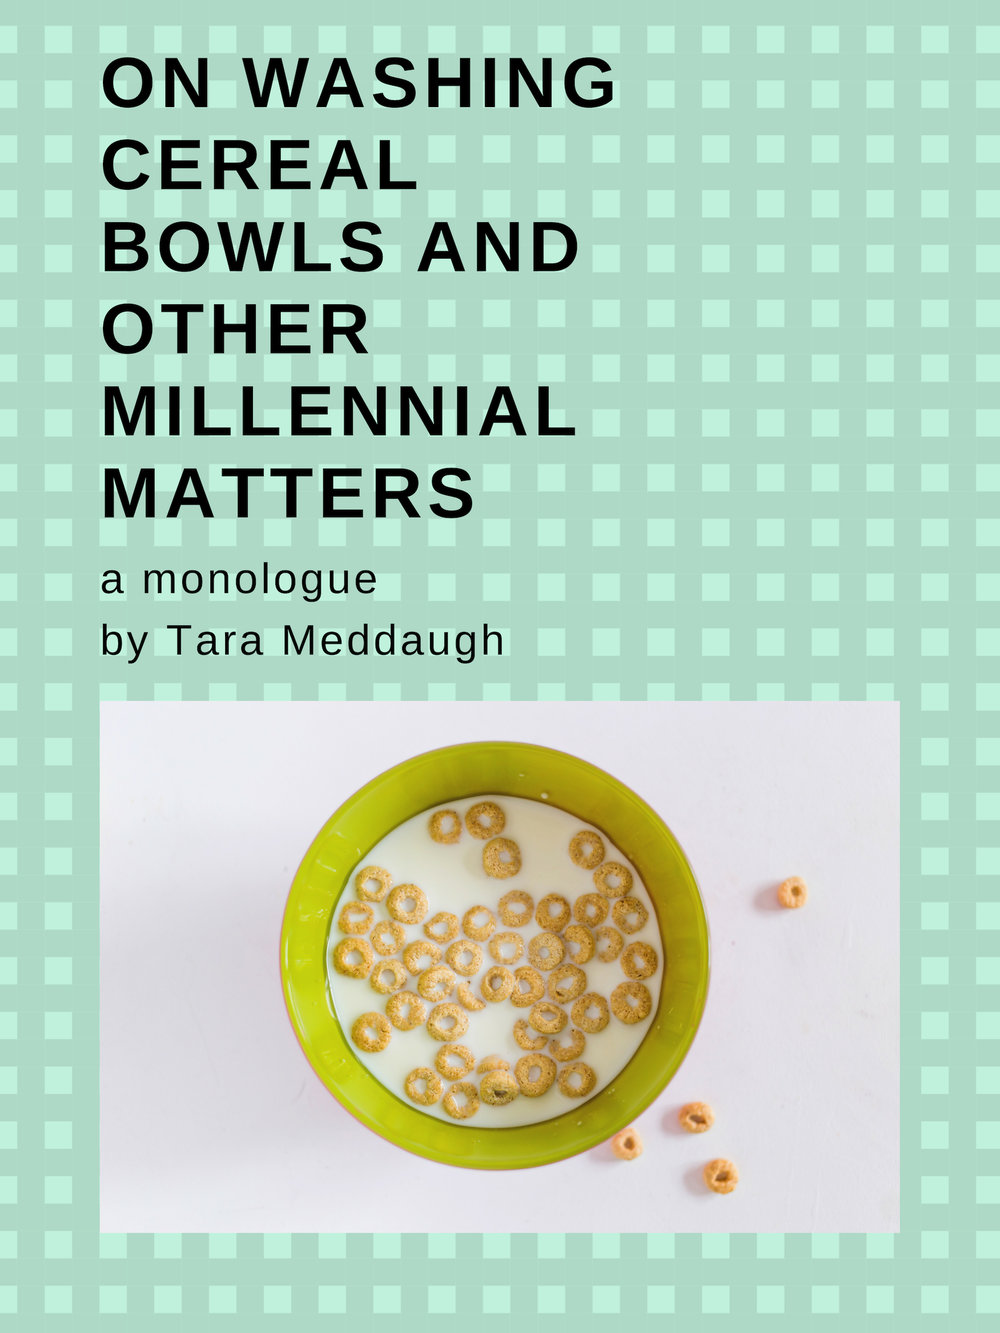 on washing cereal bowls and other millennial matters.jpg